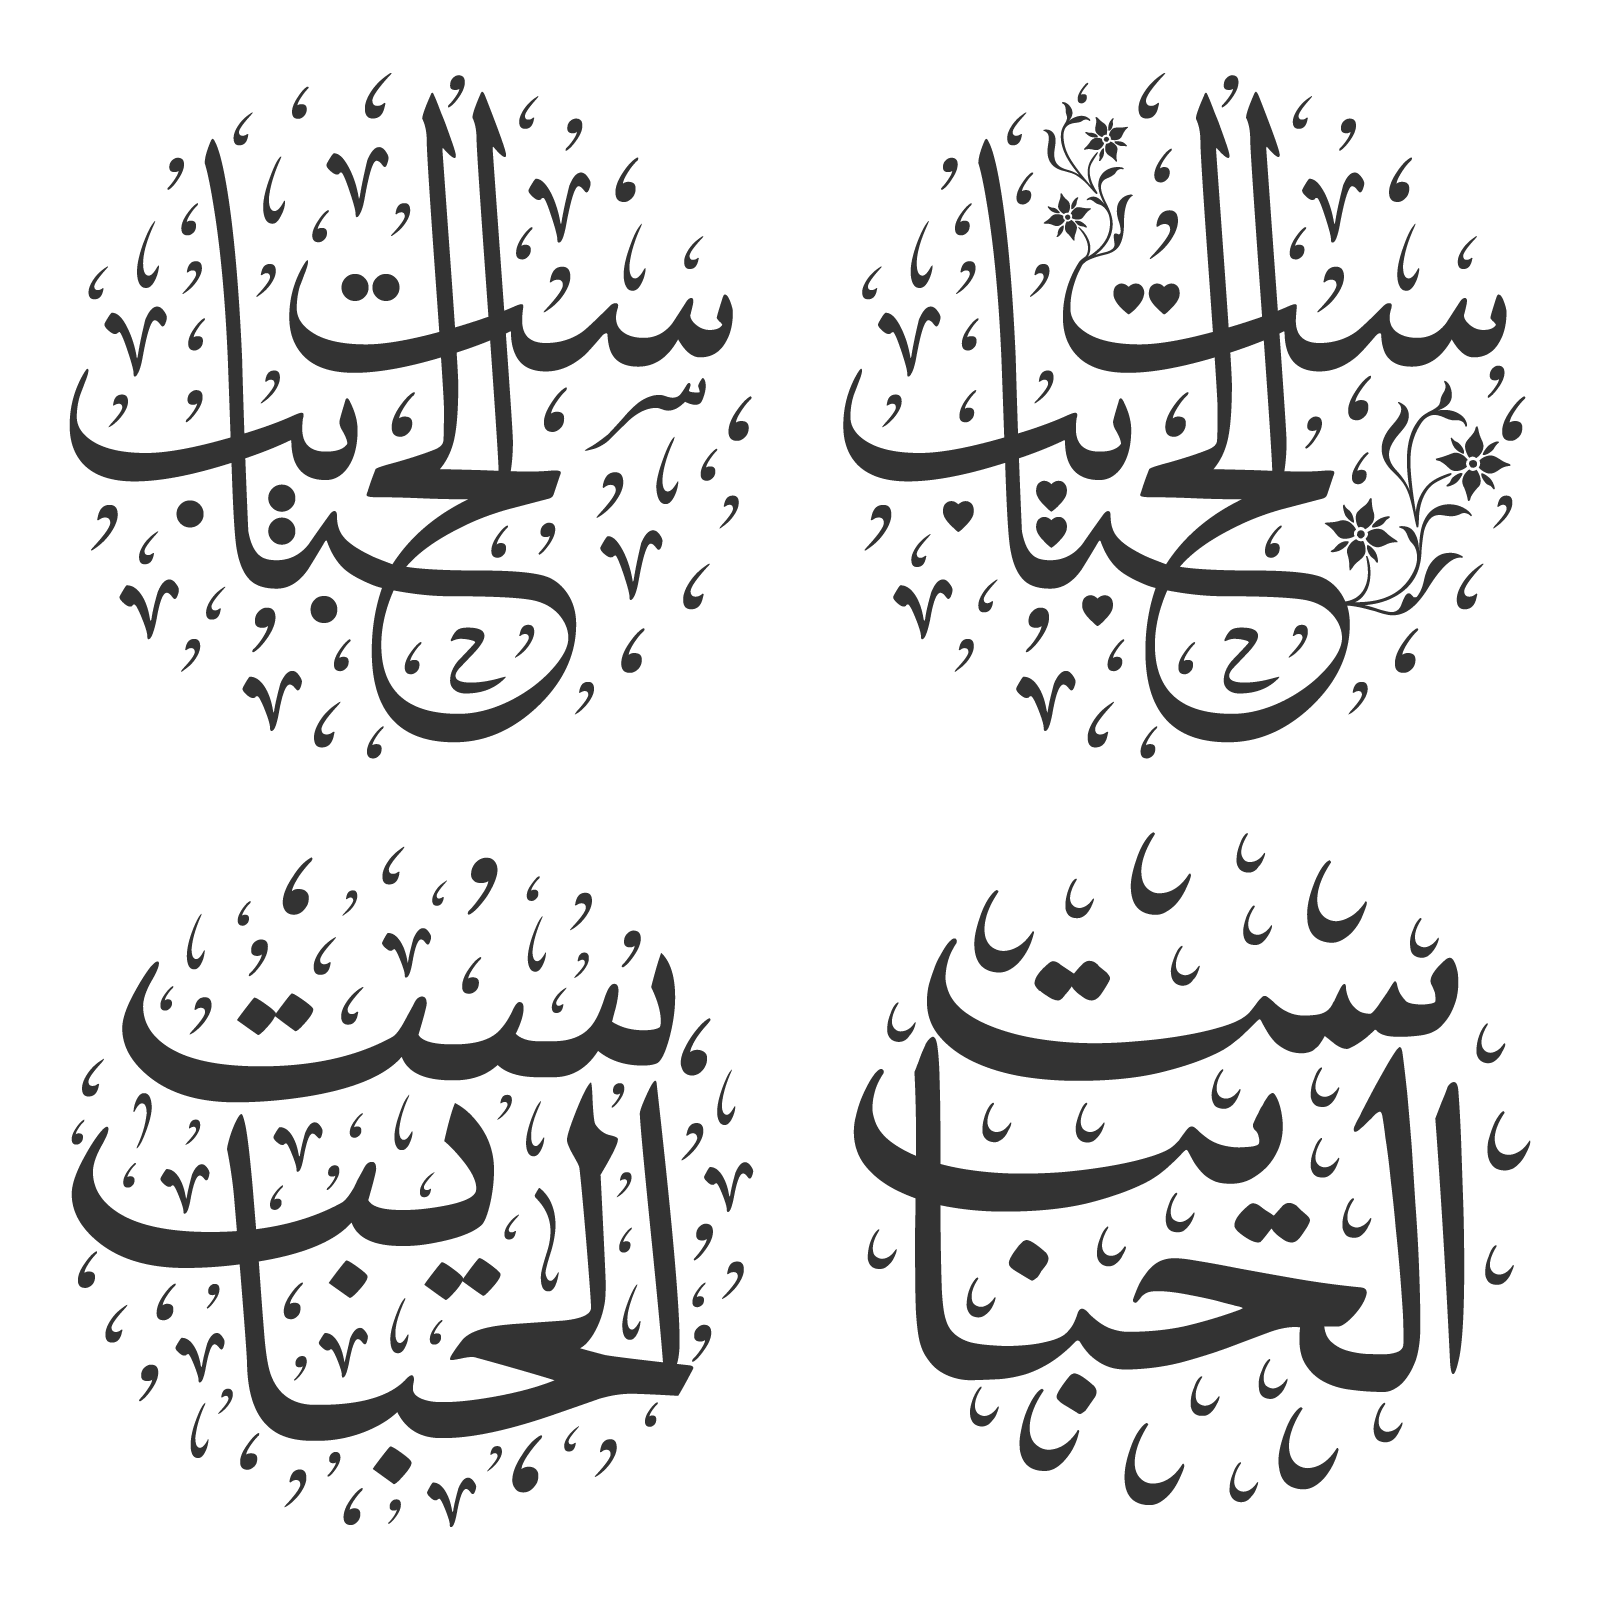 scripts st alhabayib svg eps psd ai pdf png vector download free #islamic #islam #arab #arabic #vector #vectors  #scripts #design #fonts #font